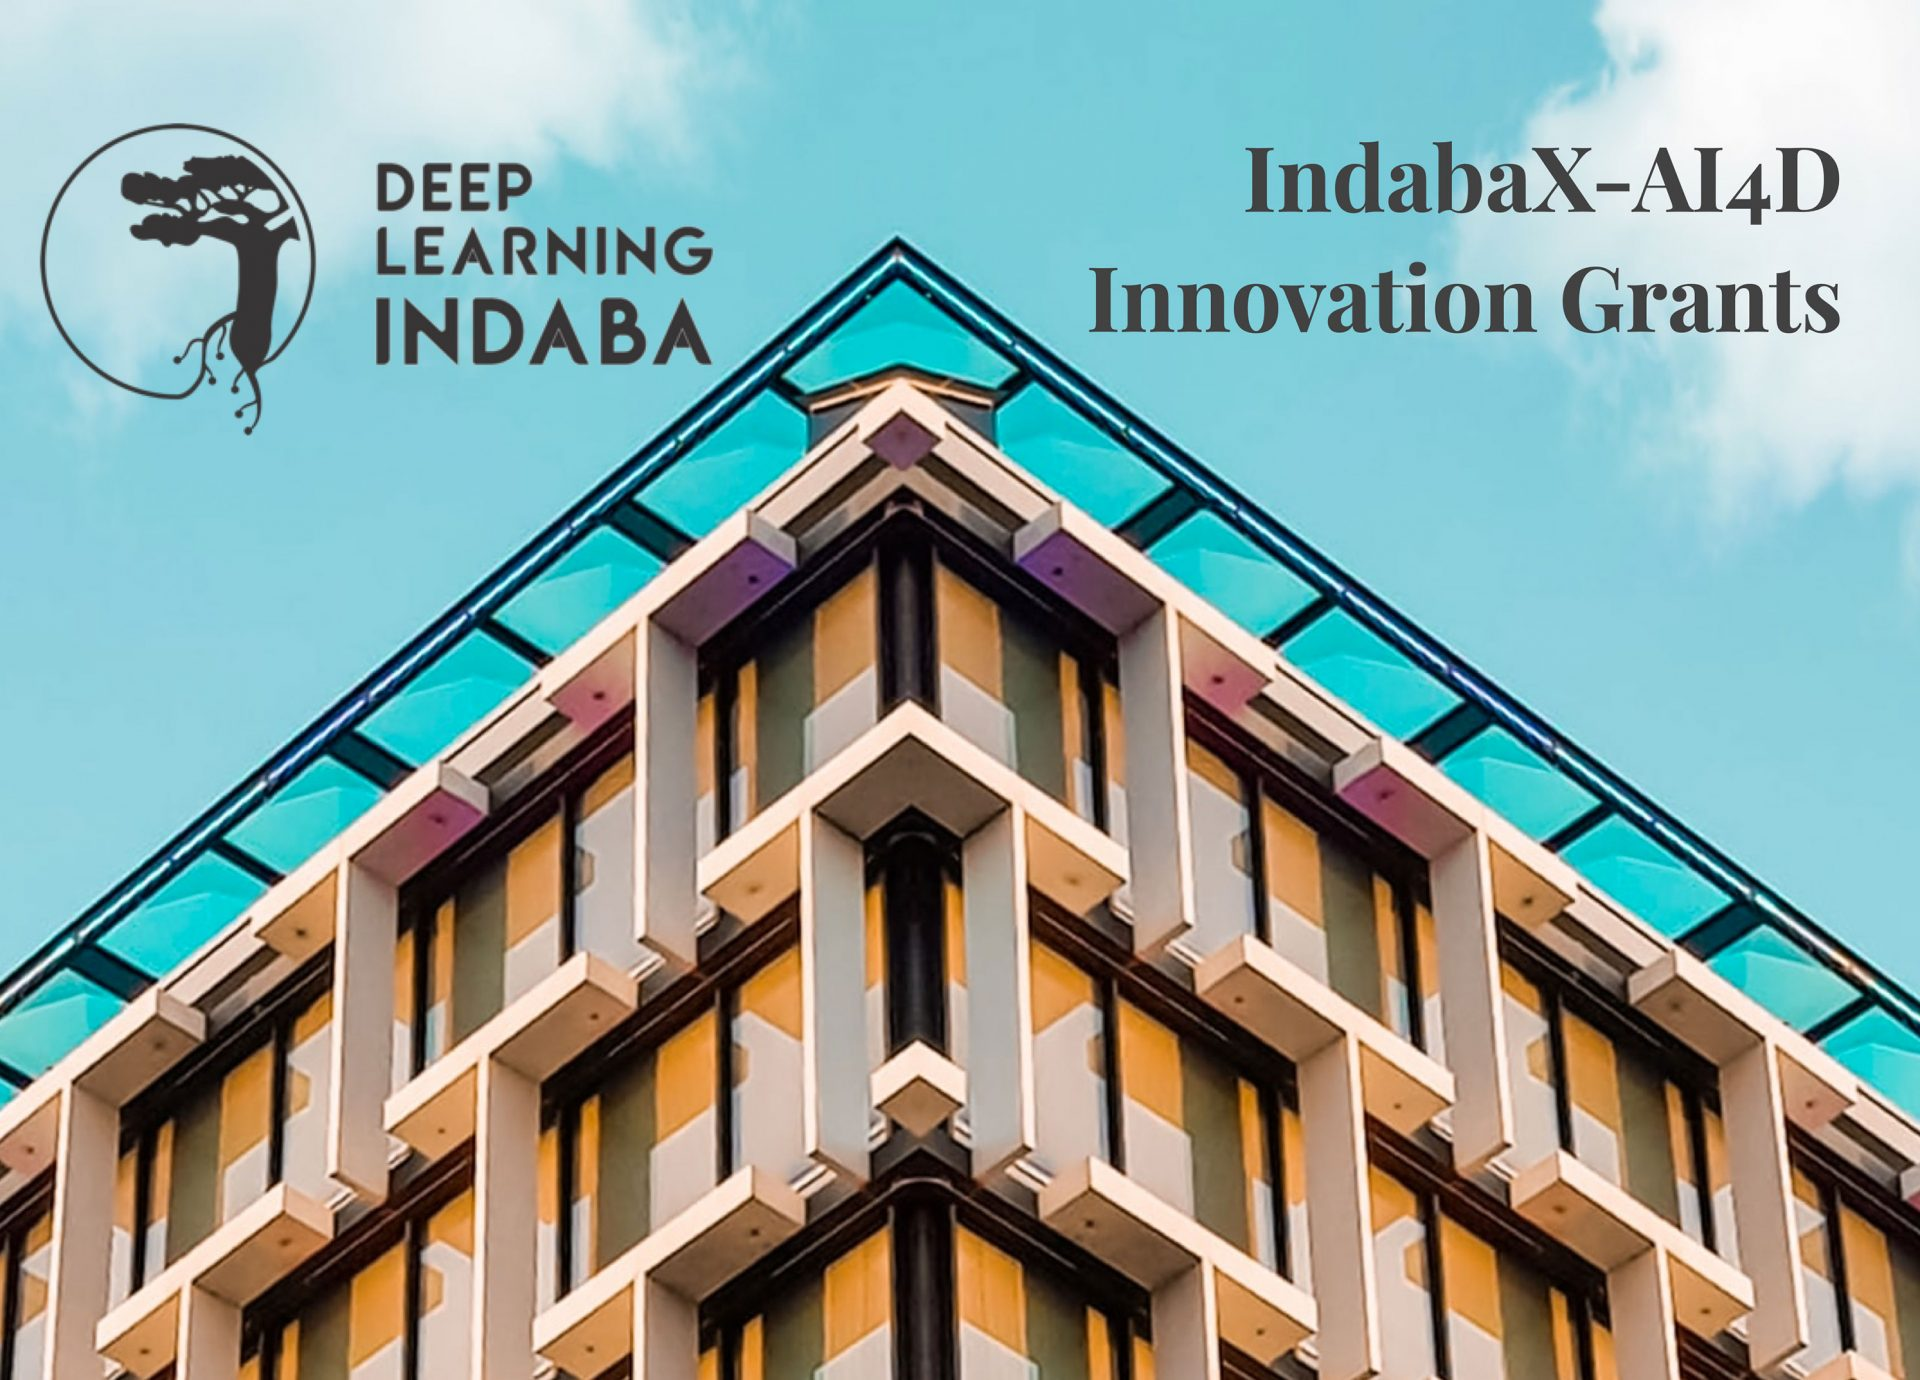 IndabaX-AI4D Innovation Grants